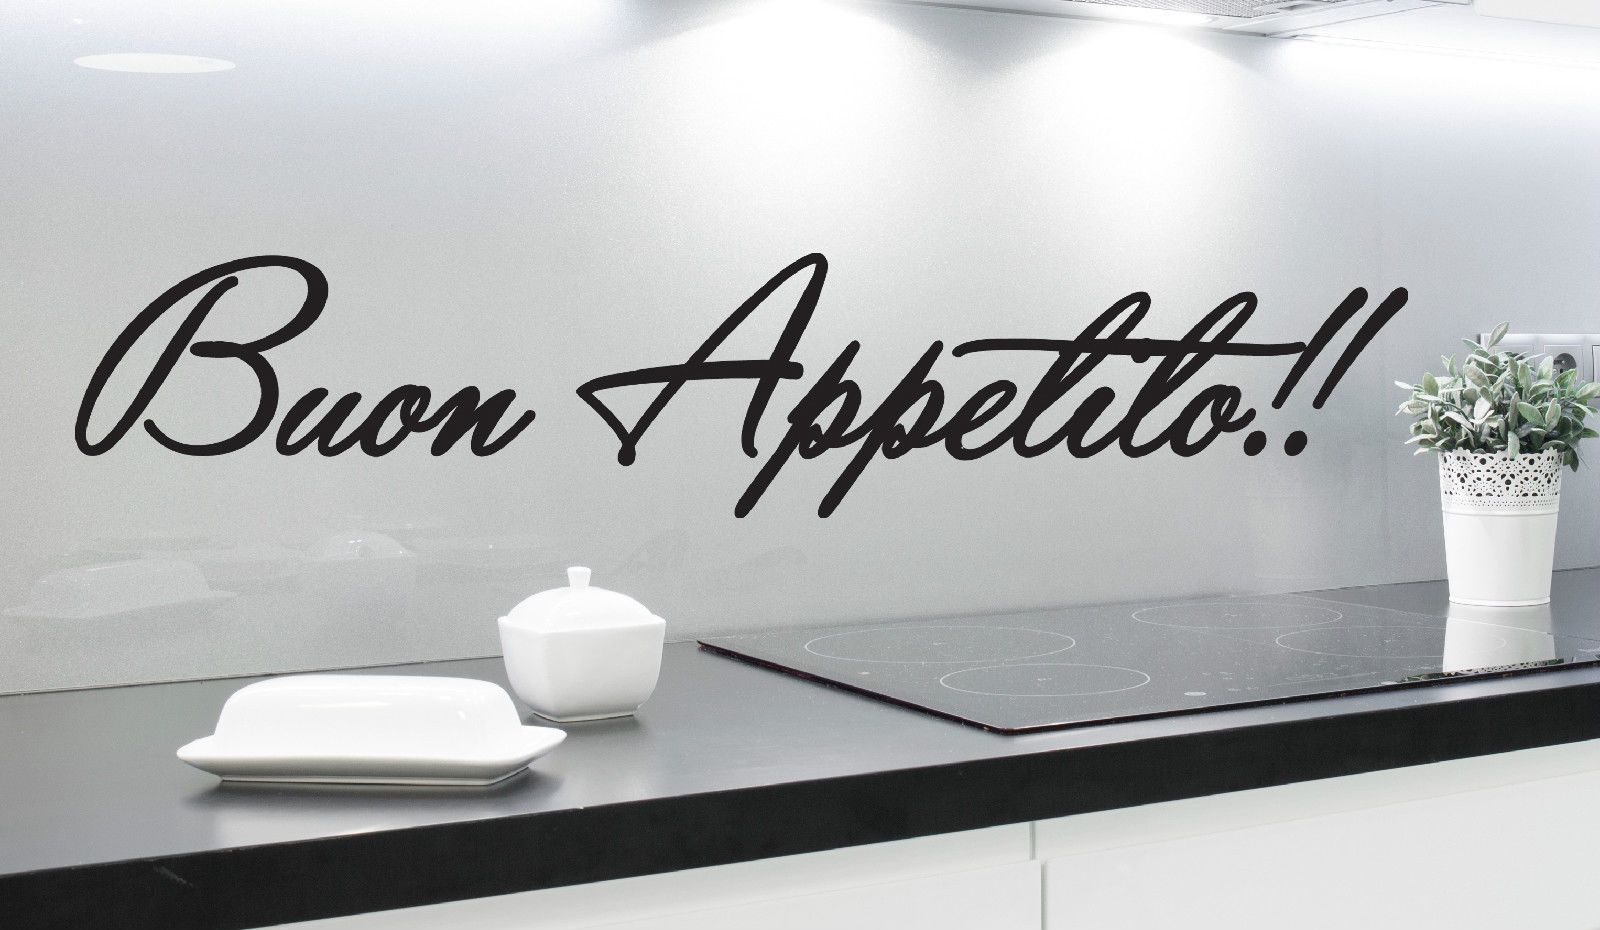 Buon appetito bon appetite wall art sticker italian quote kitchen